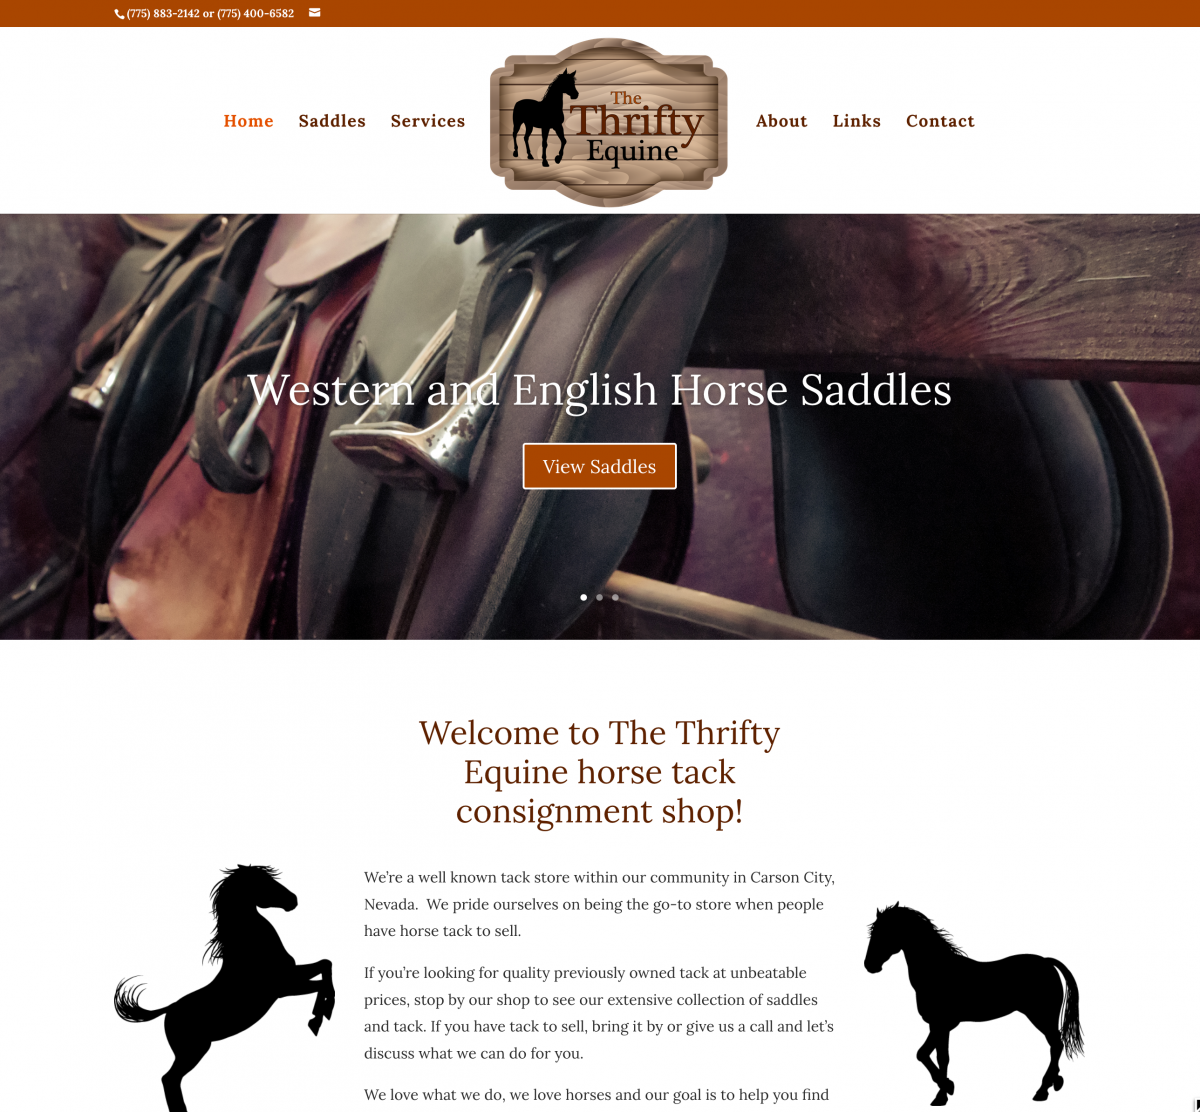 The Thrifty Equine horse tack consignment shop